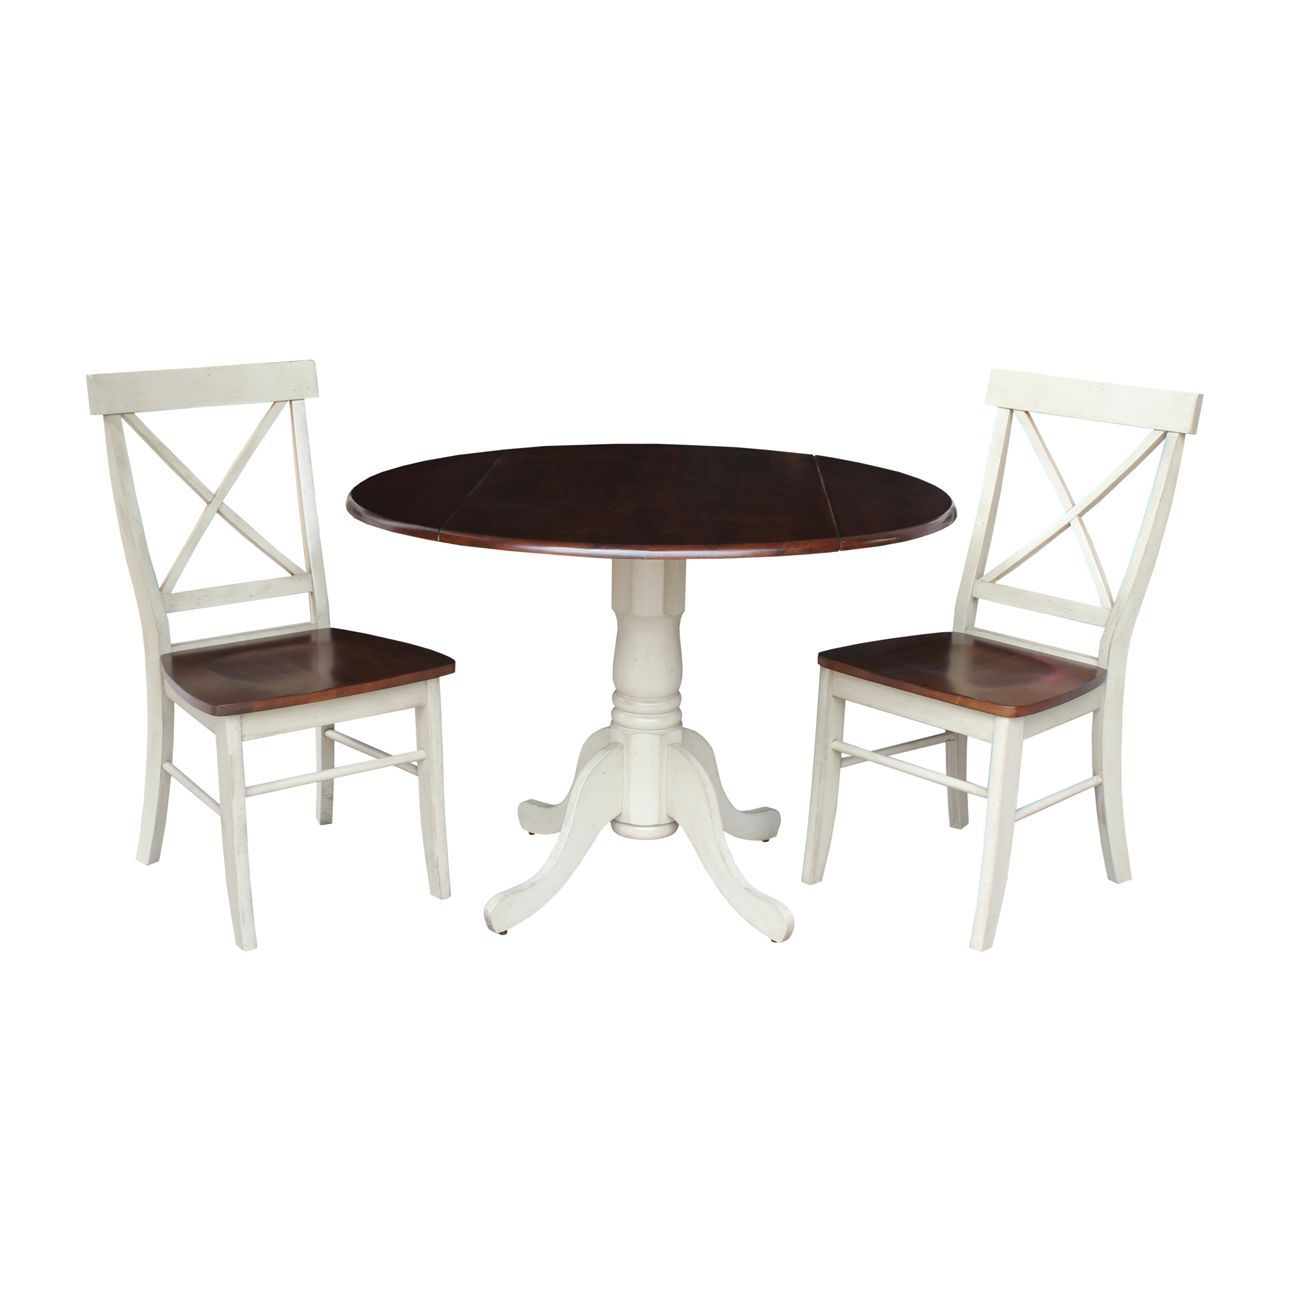 Set of 3 pcs 42 dual drop leaf table with 2 x back chairs set of 3 brown size 3 piece sets